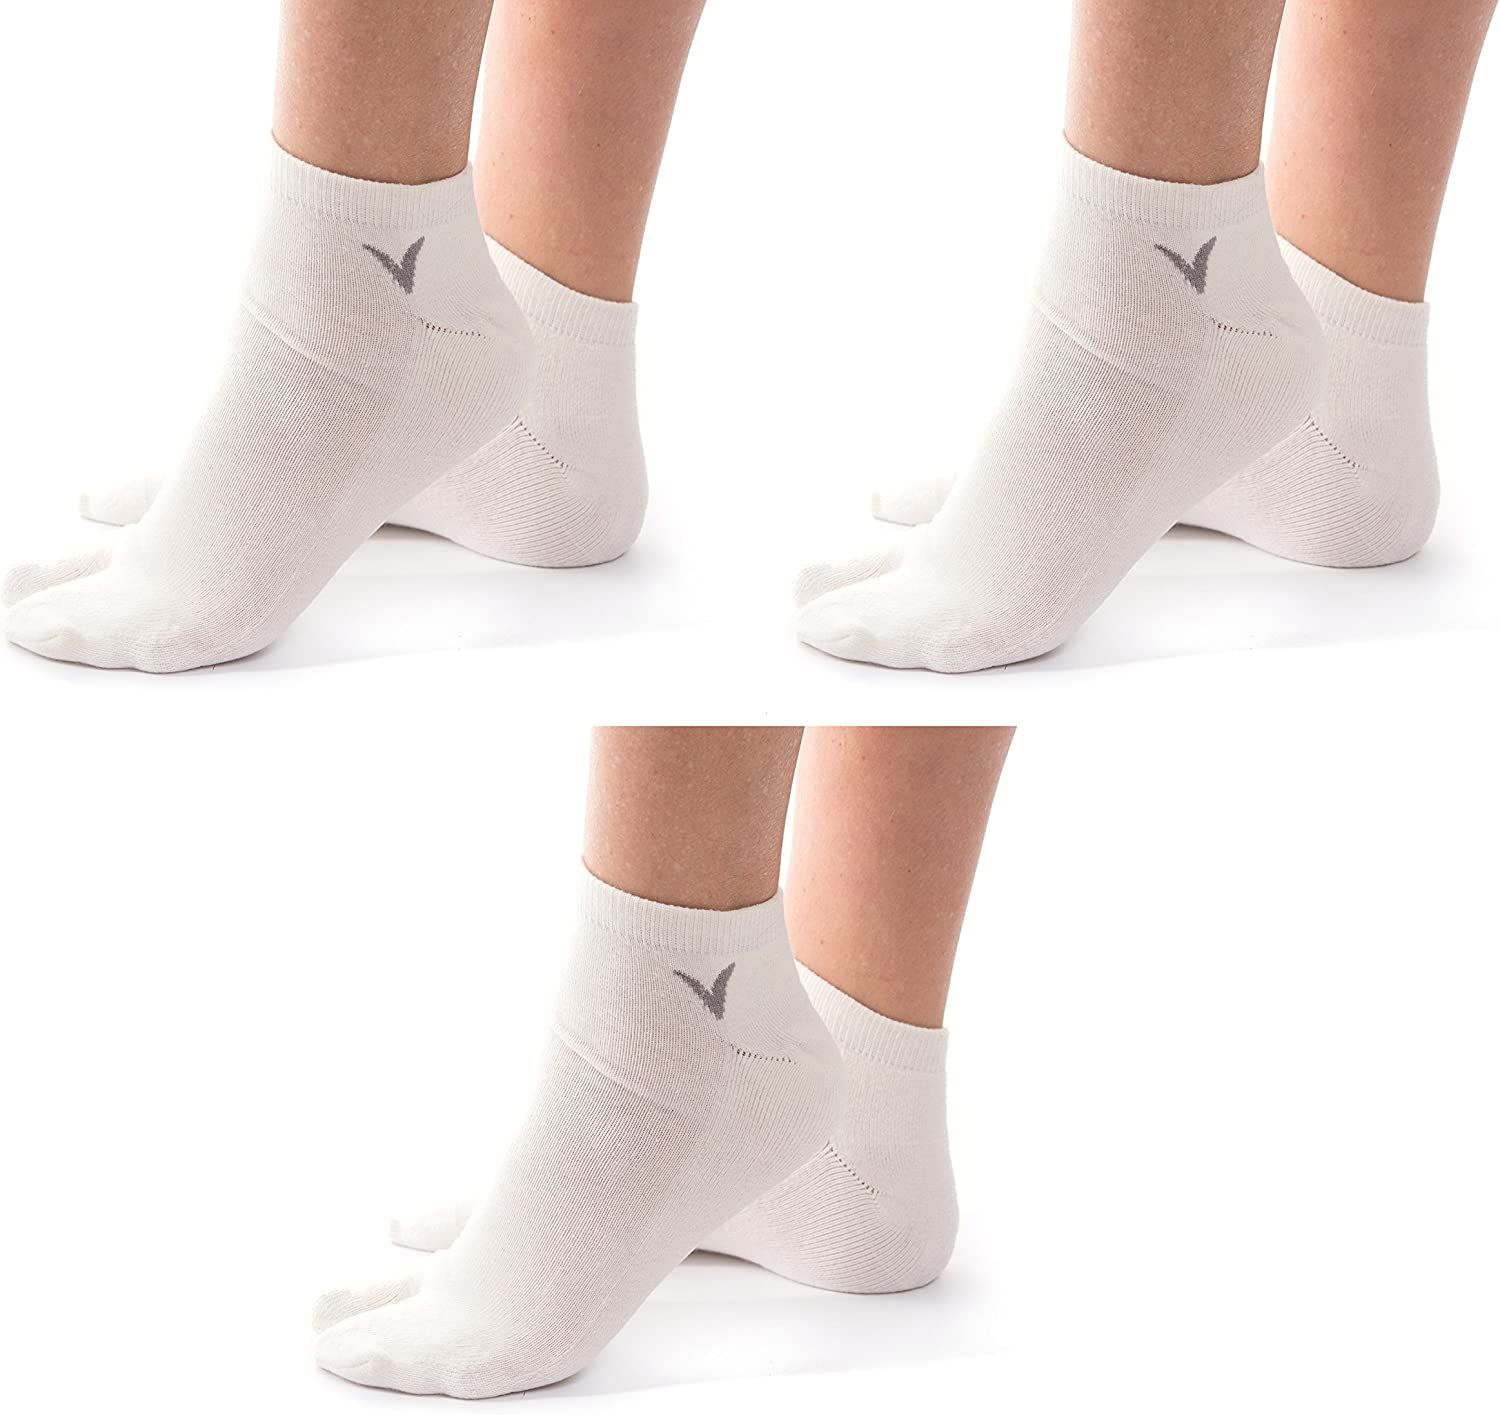 3 Pairs Thicker Athletic Flip Flop Socks Tabi Big Toe Crew Or Ankle Mens And Womens V-Toe